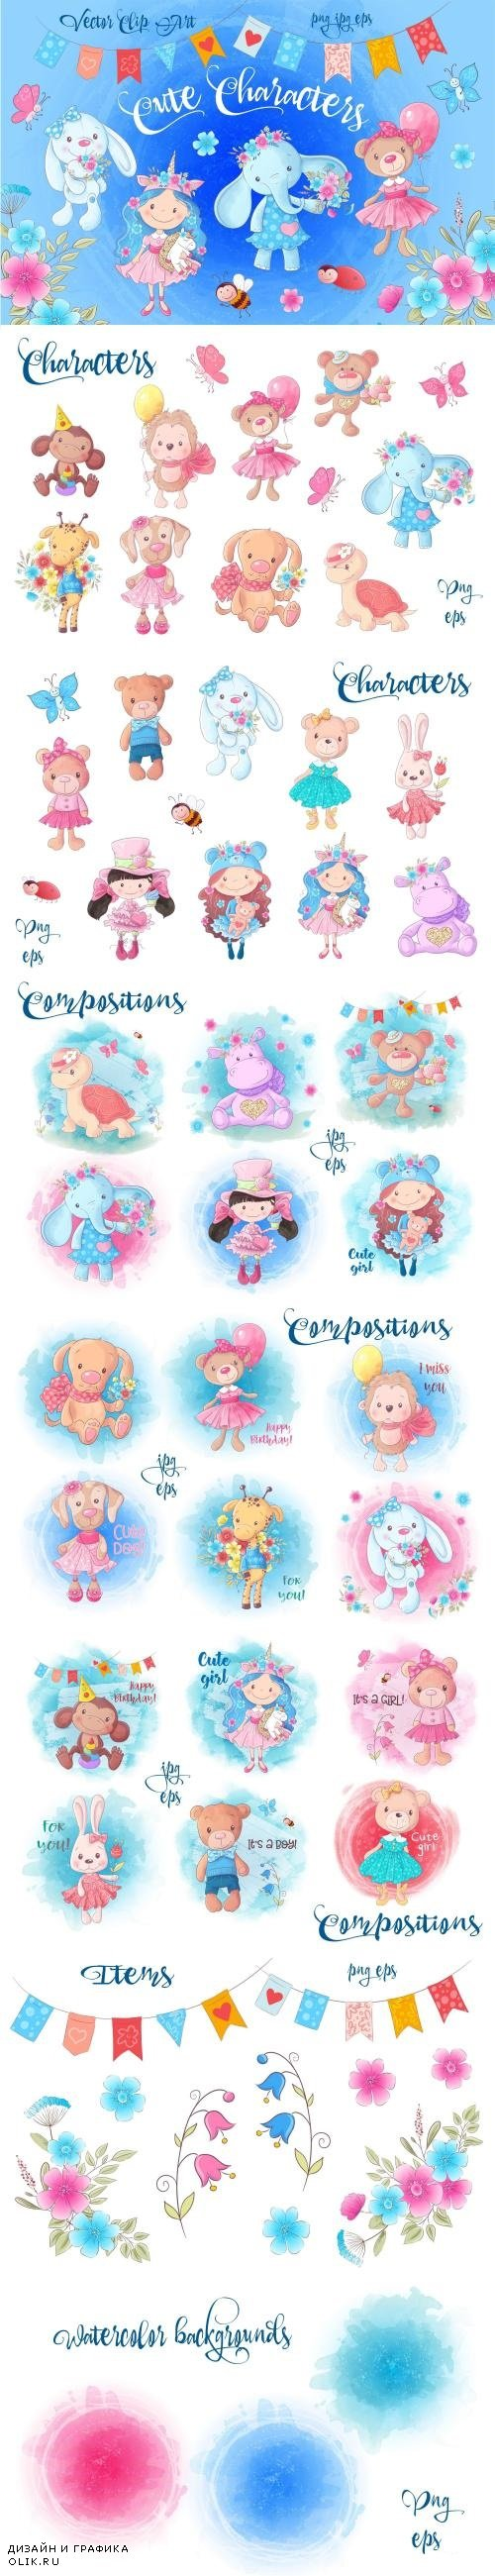 Cute Characters – vector clip art - 4197356